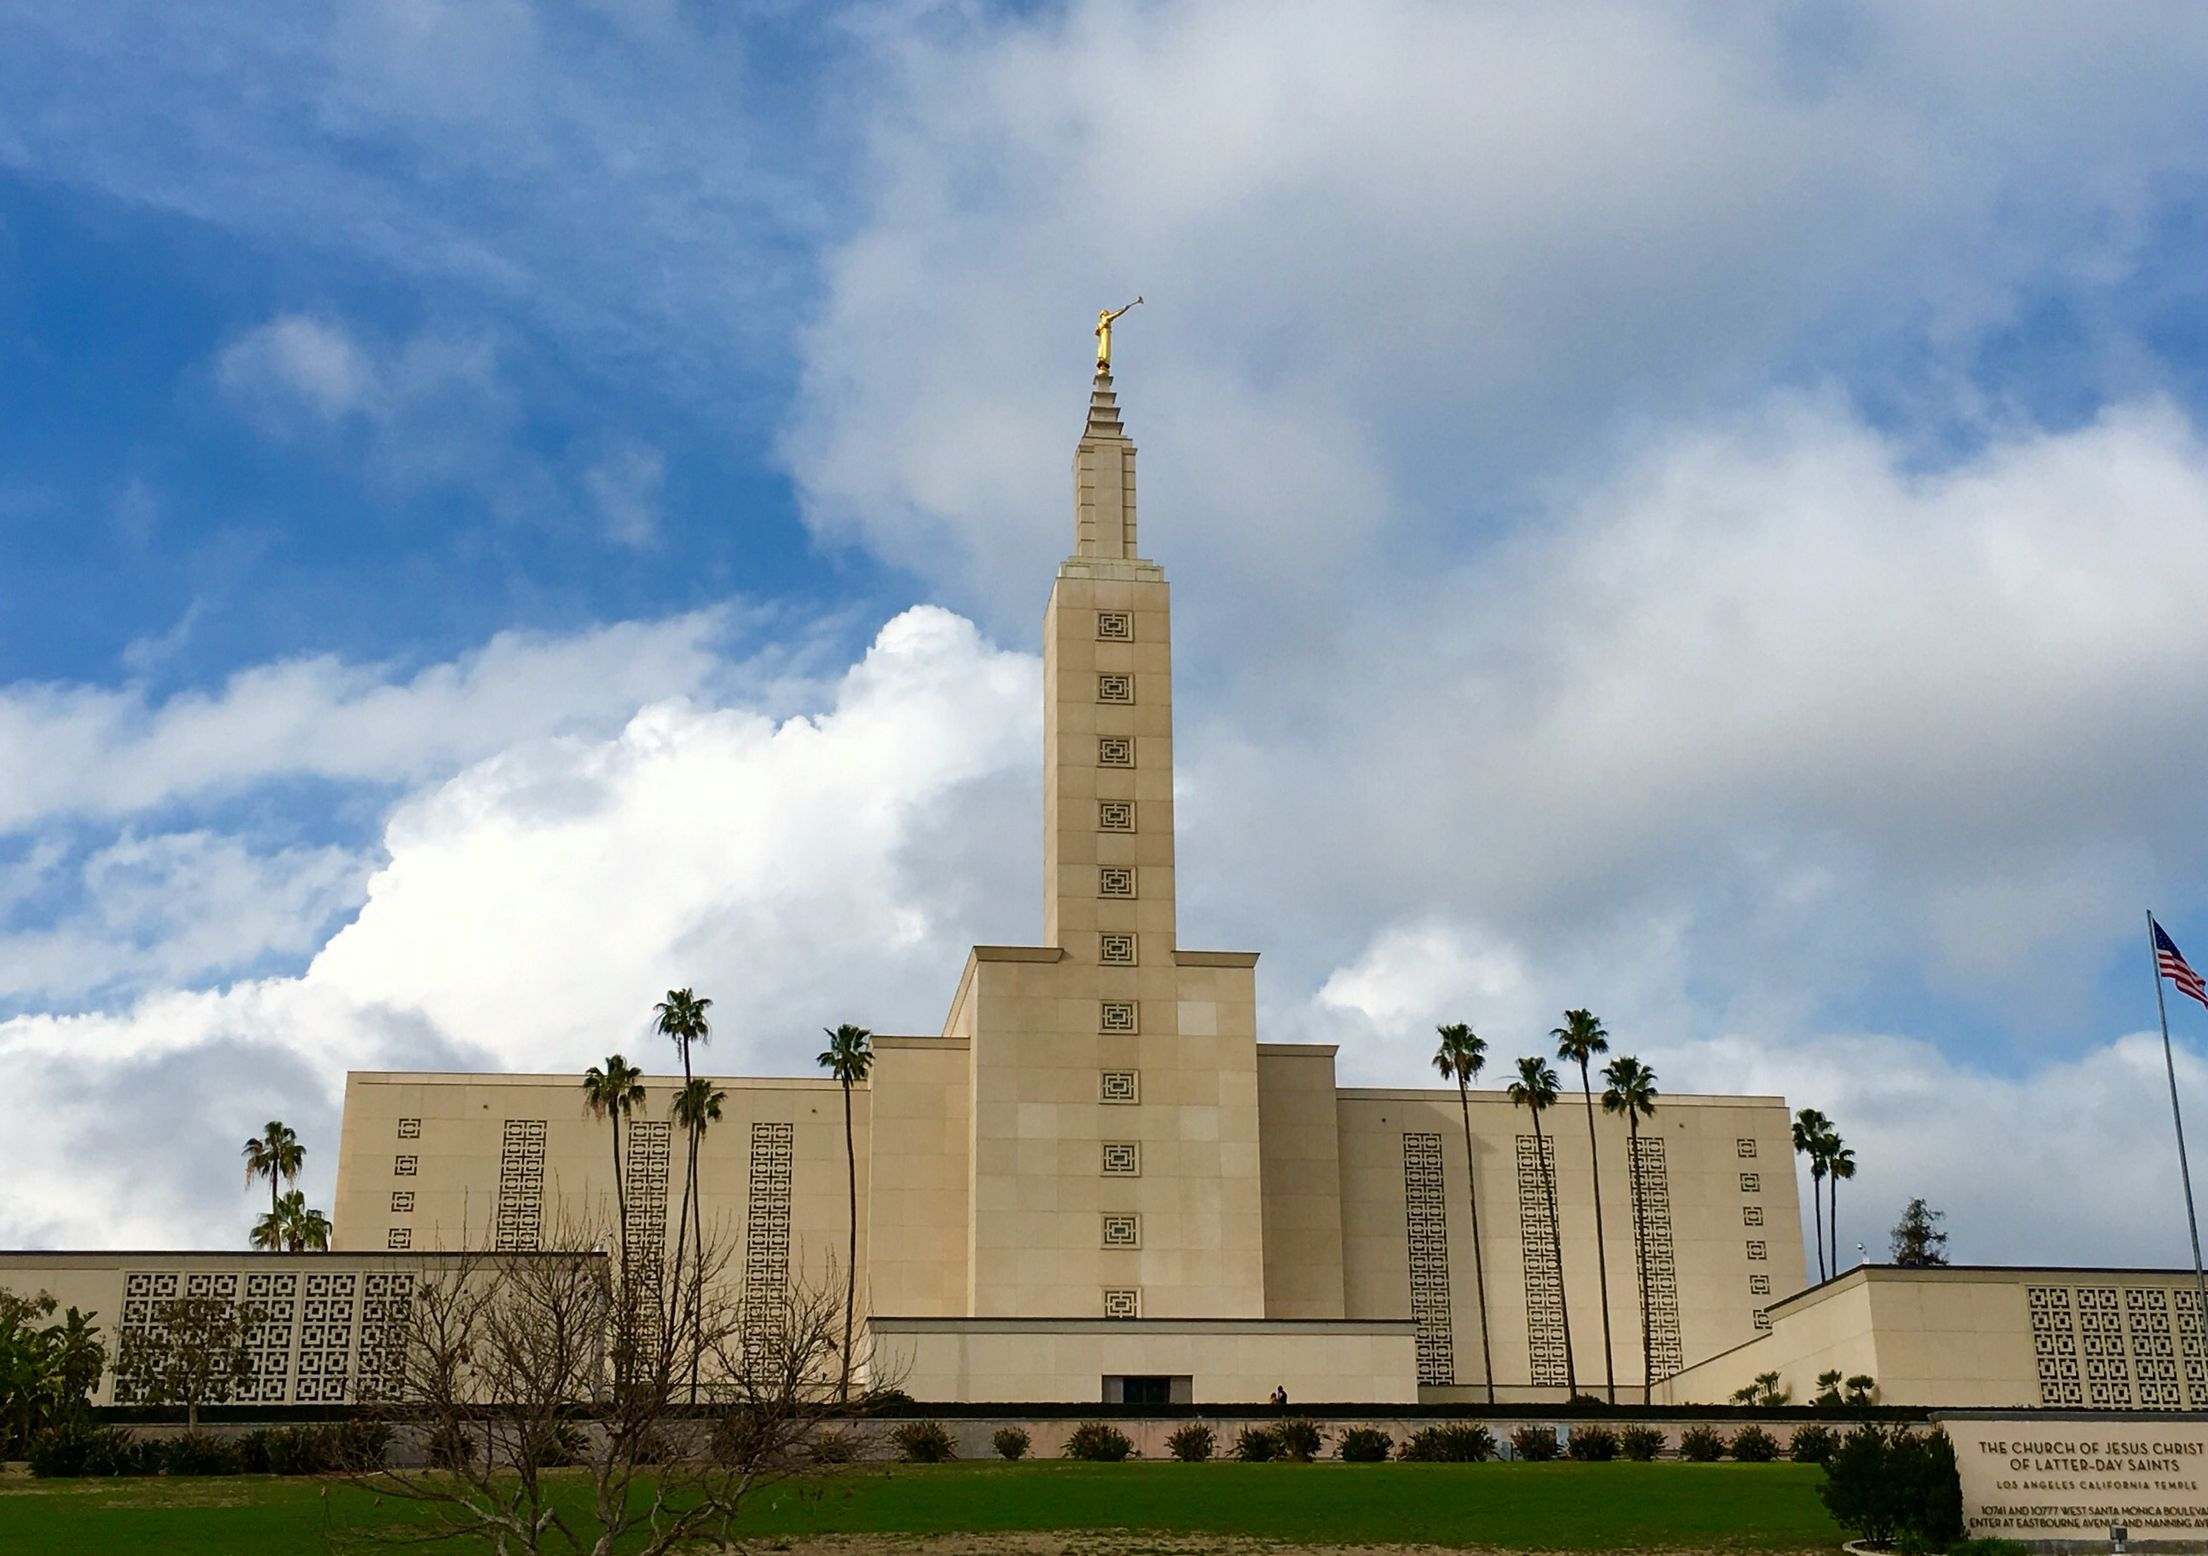 The Beautiful Los Angeles California Temple Is The Second Largest Mormon Temple To Salt Lake City And Is Located California History City Of Angels Angel Moroni